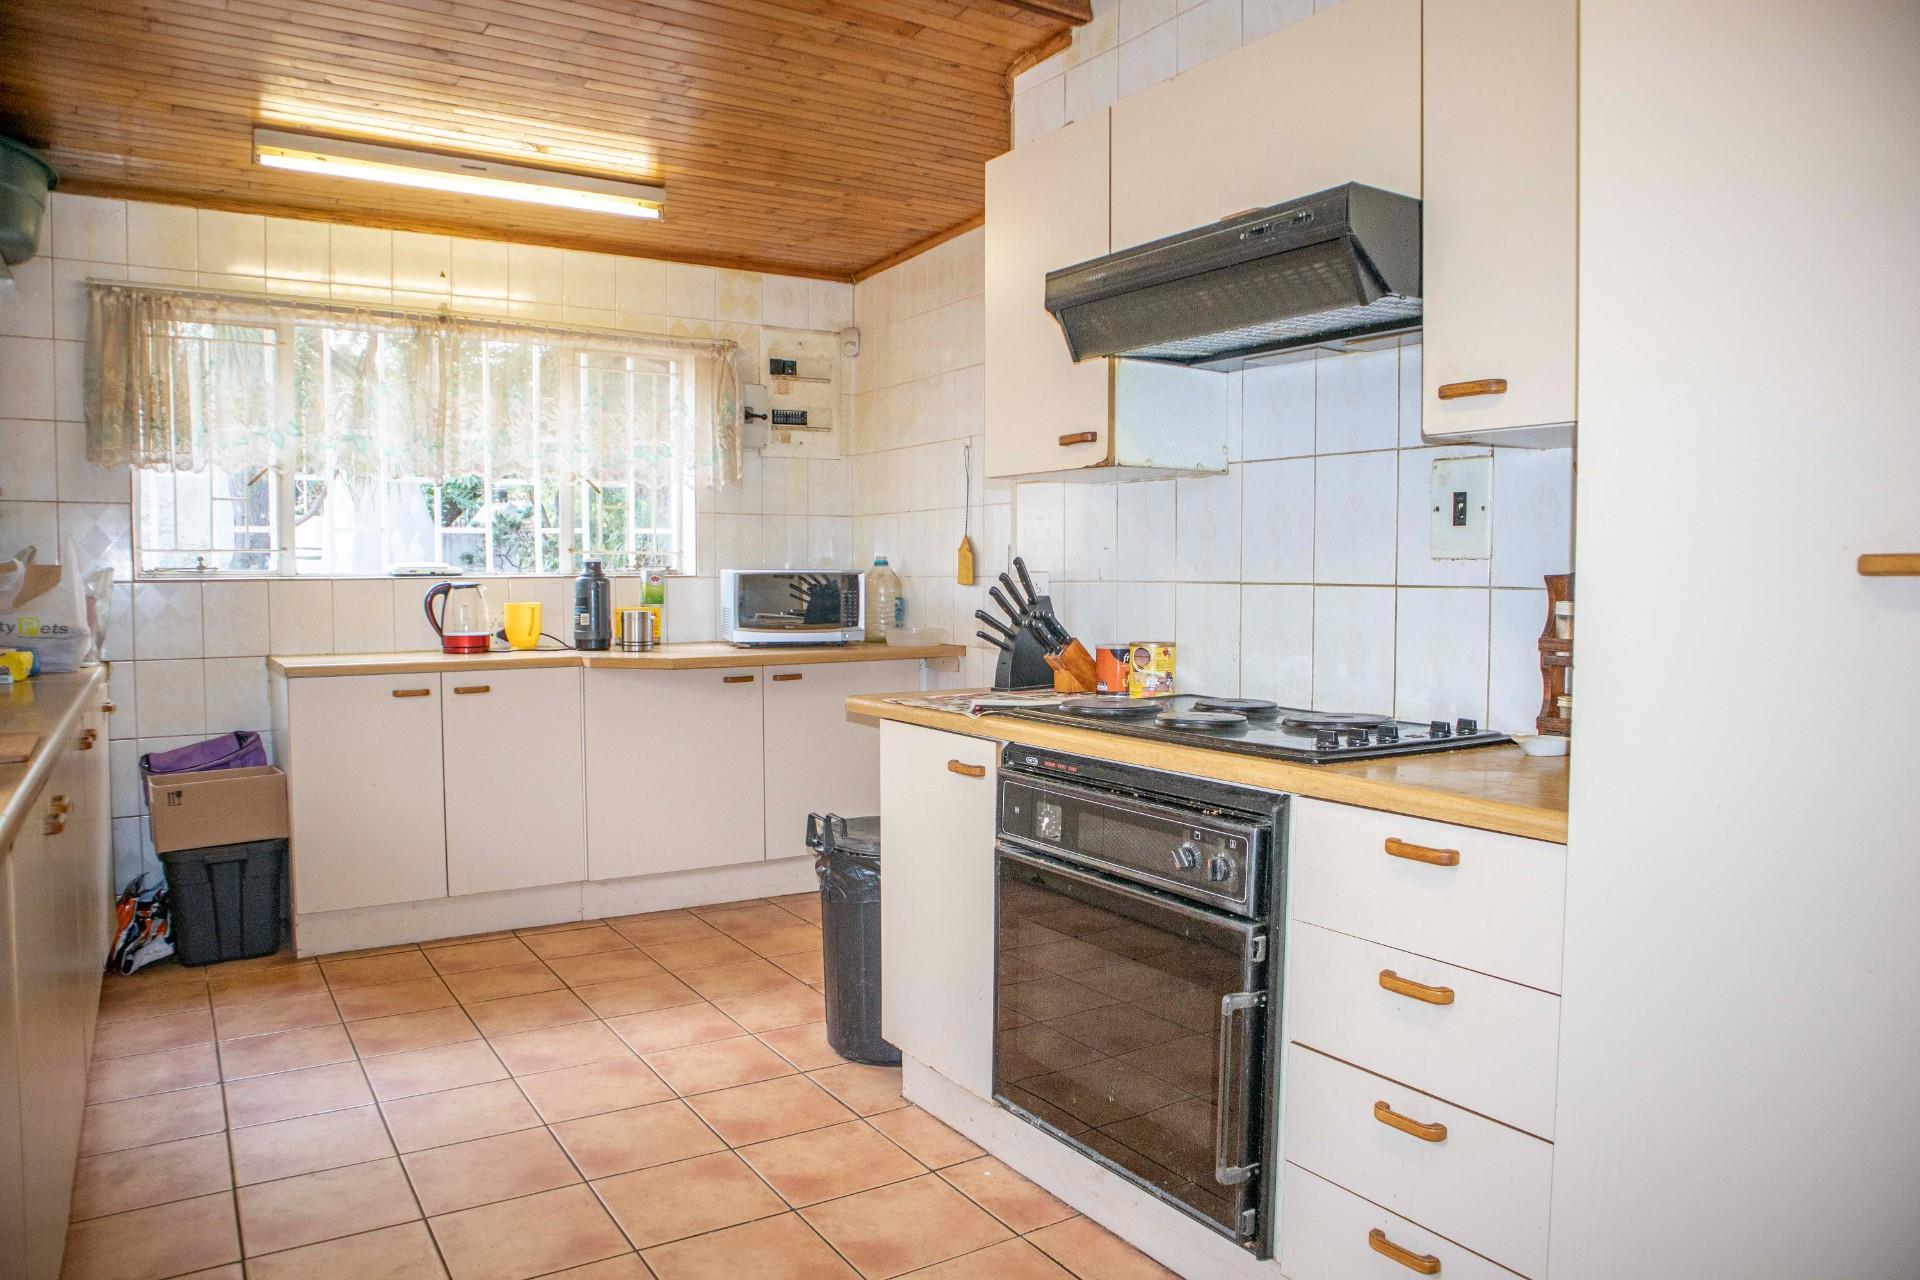 3 Bedroom House For Sale in Kloofendal